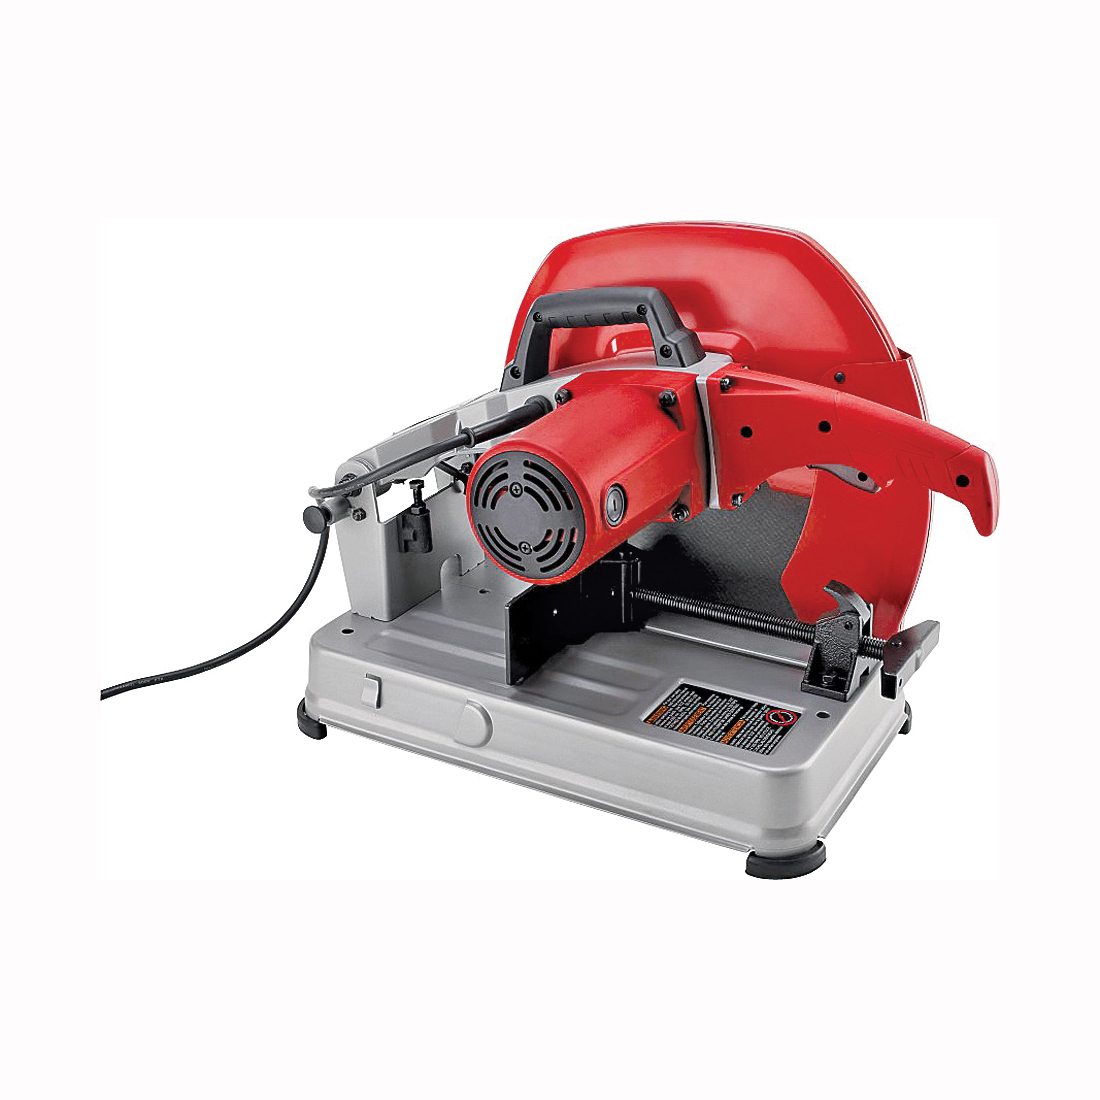 Picture of Milwaukee 6177-20 Cut-Off Machine, 120 V, 15 A, 14 in Dia Blade, 5 in Cutting Capacity, 3900 rpm Speed